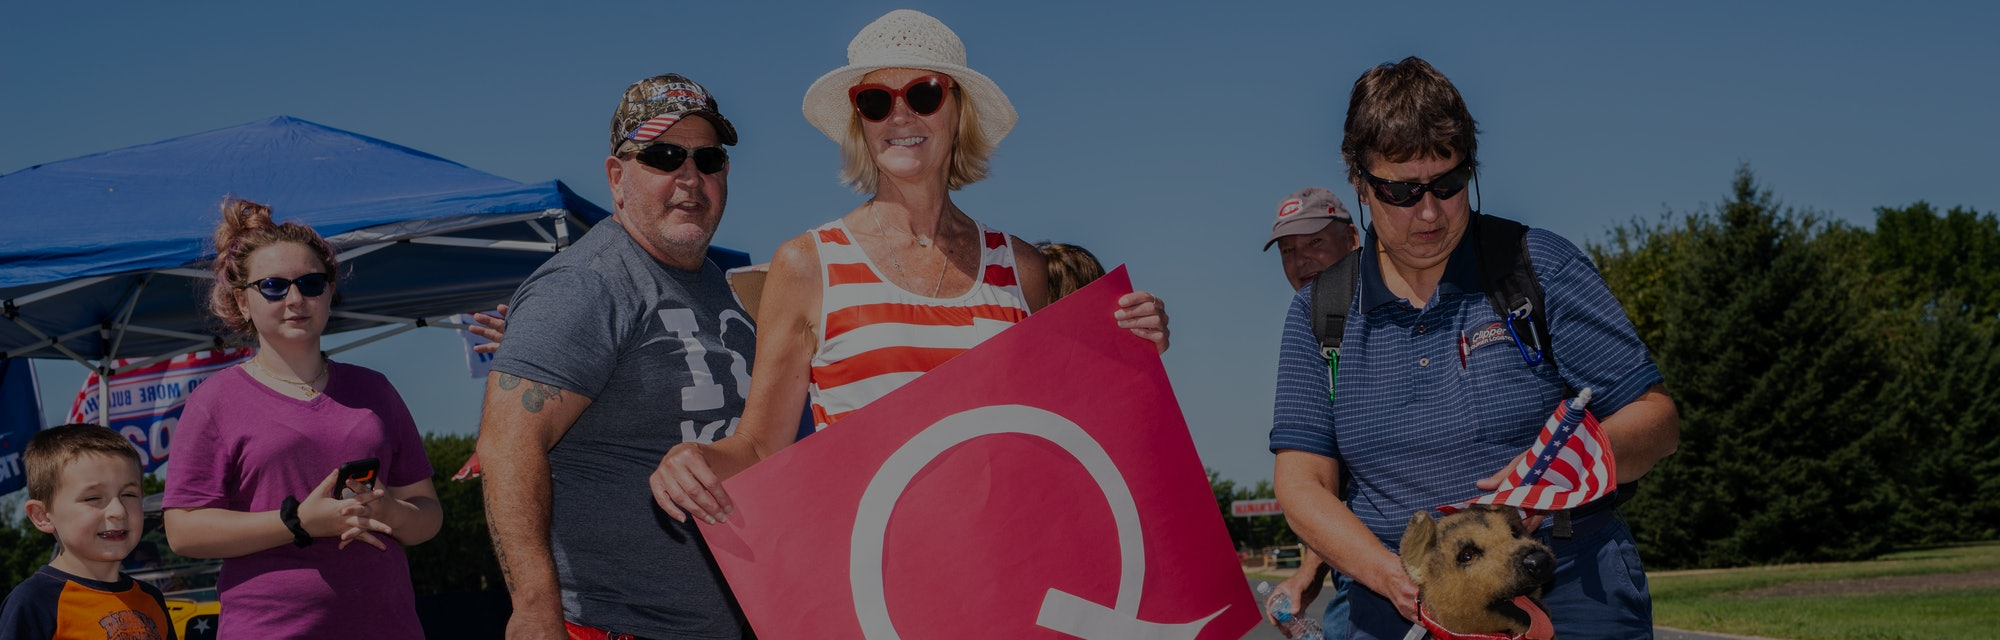 A QAnon supporter can be seen holding a Q for the movement.